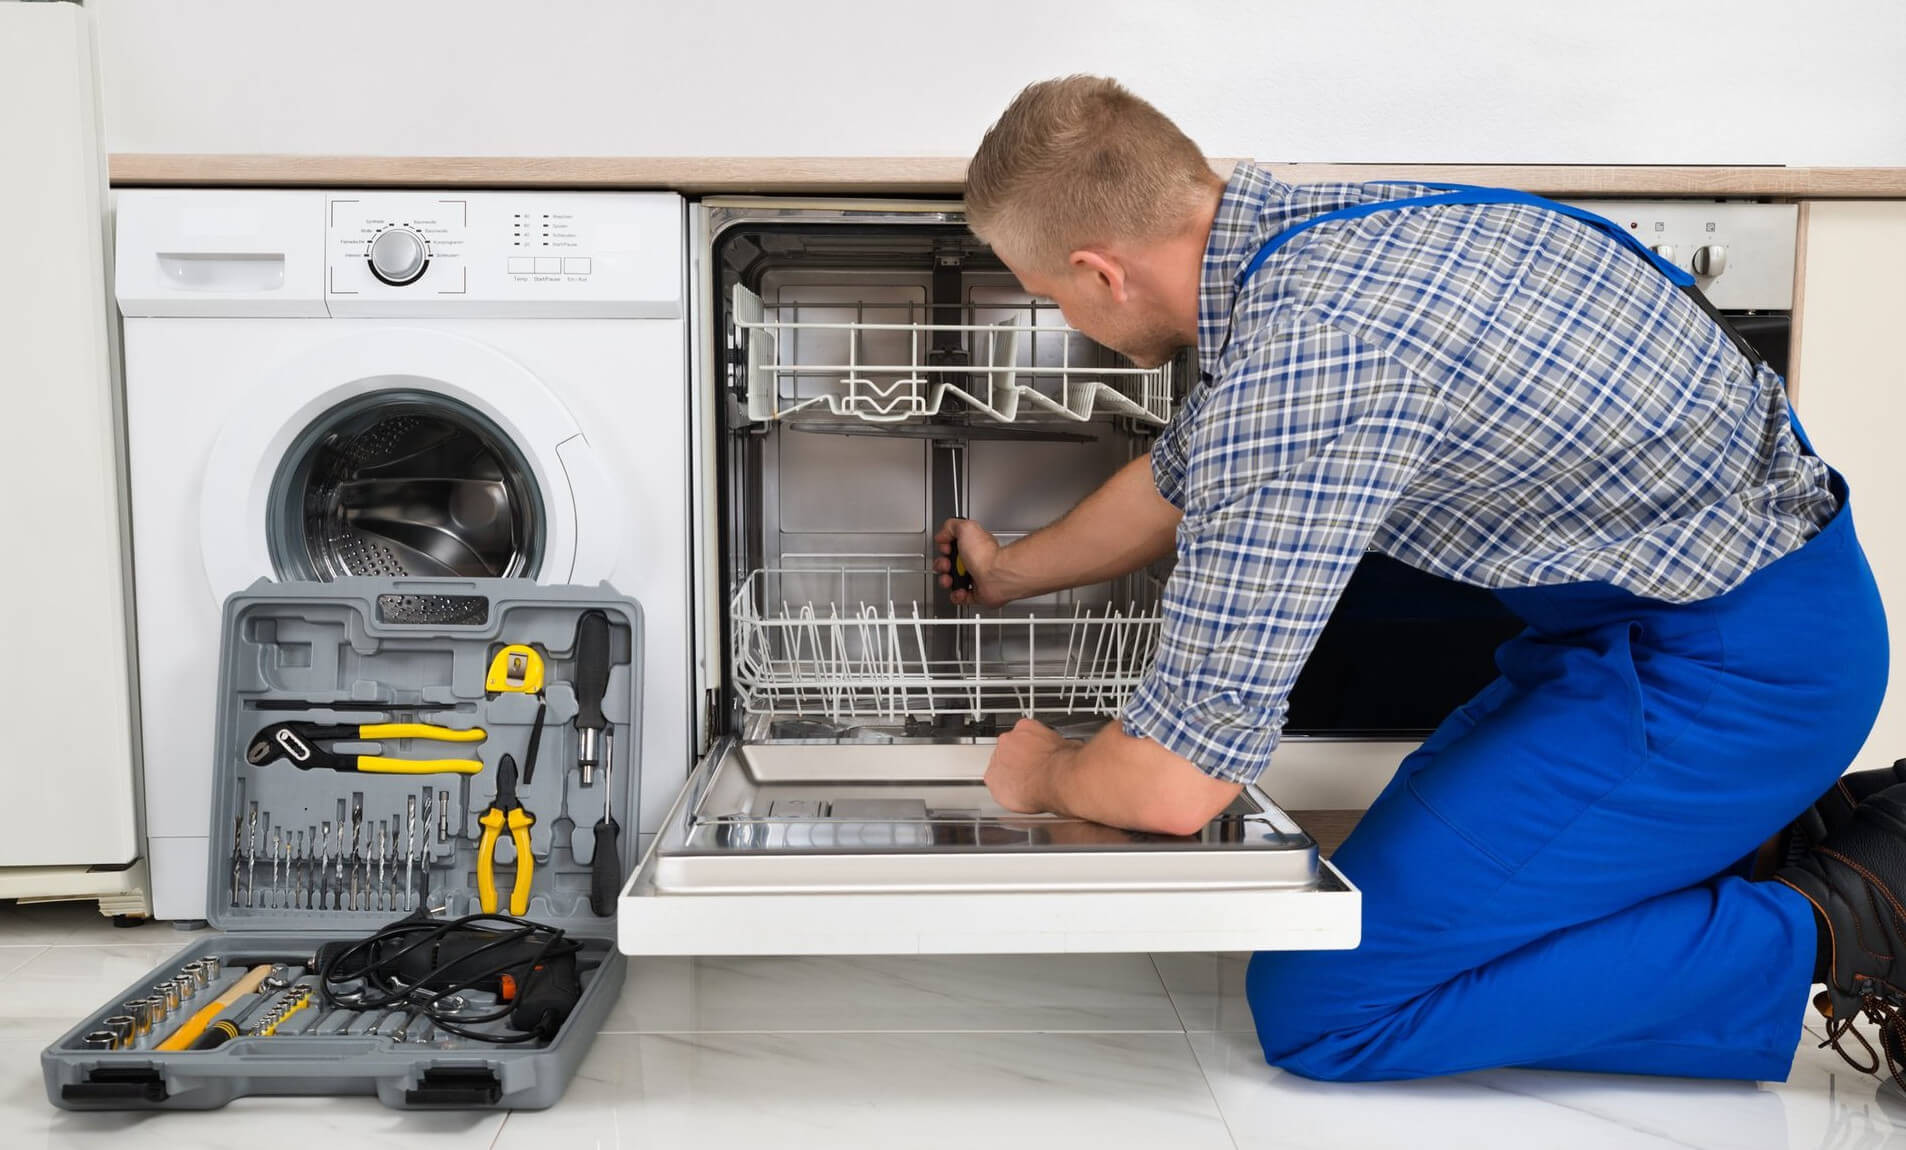 qatar-dishwasher-repair